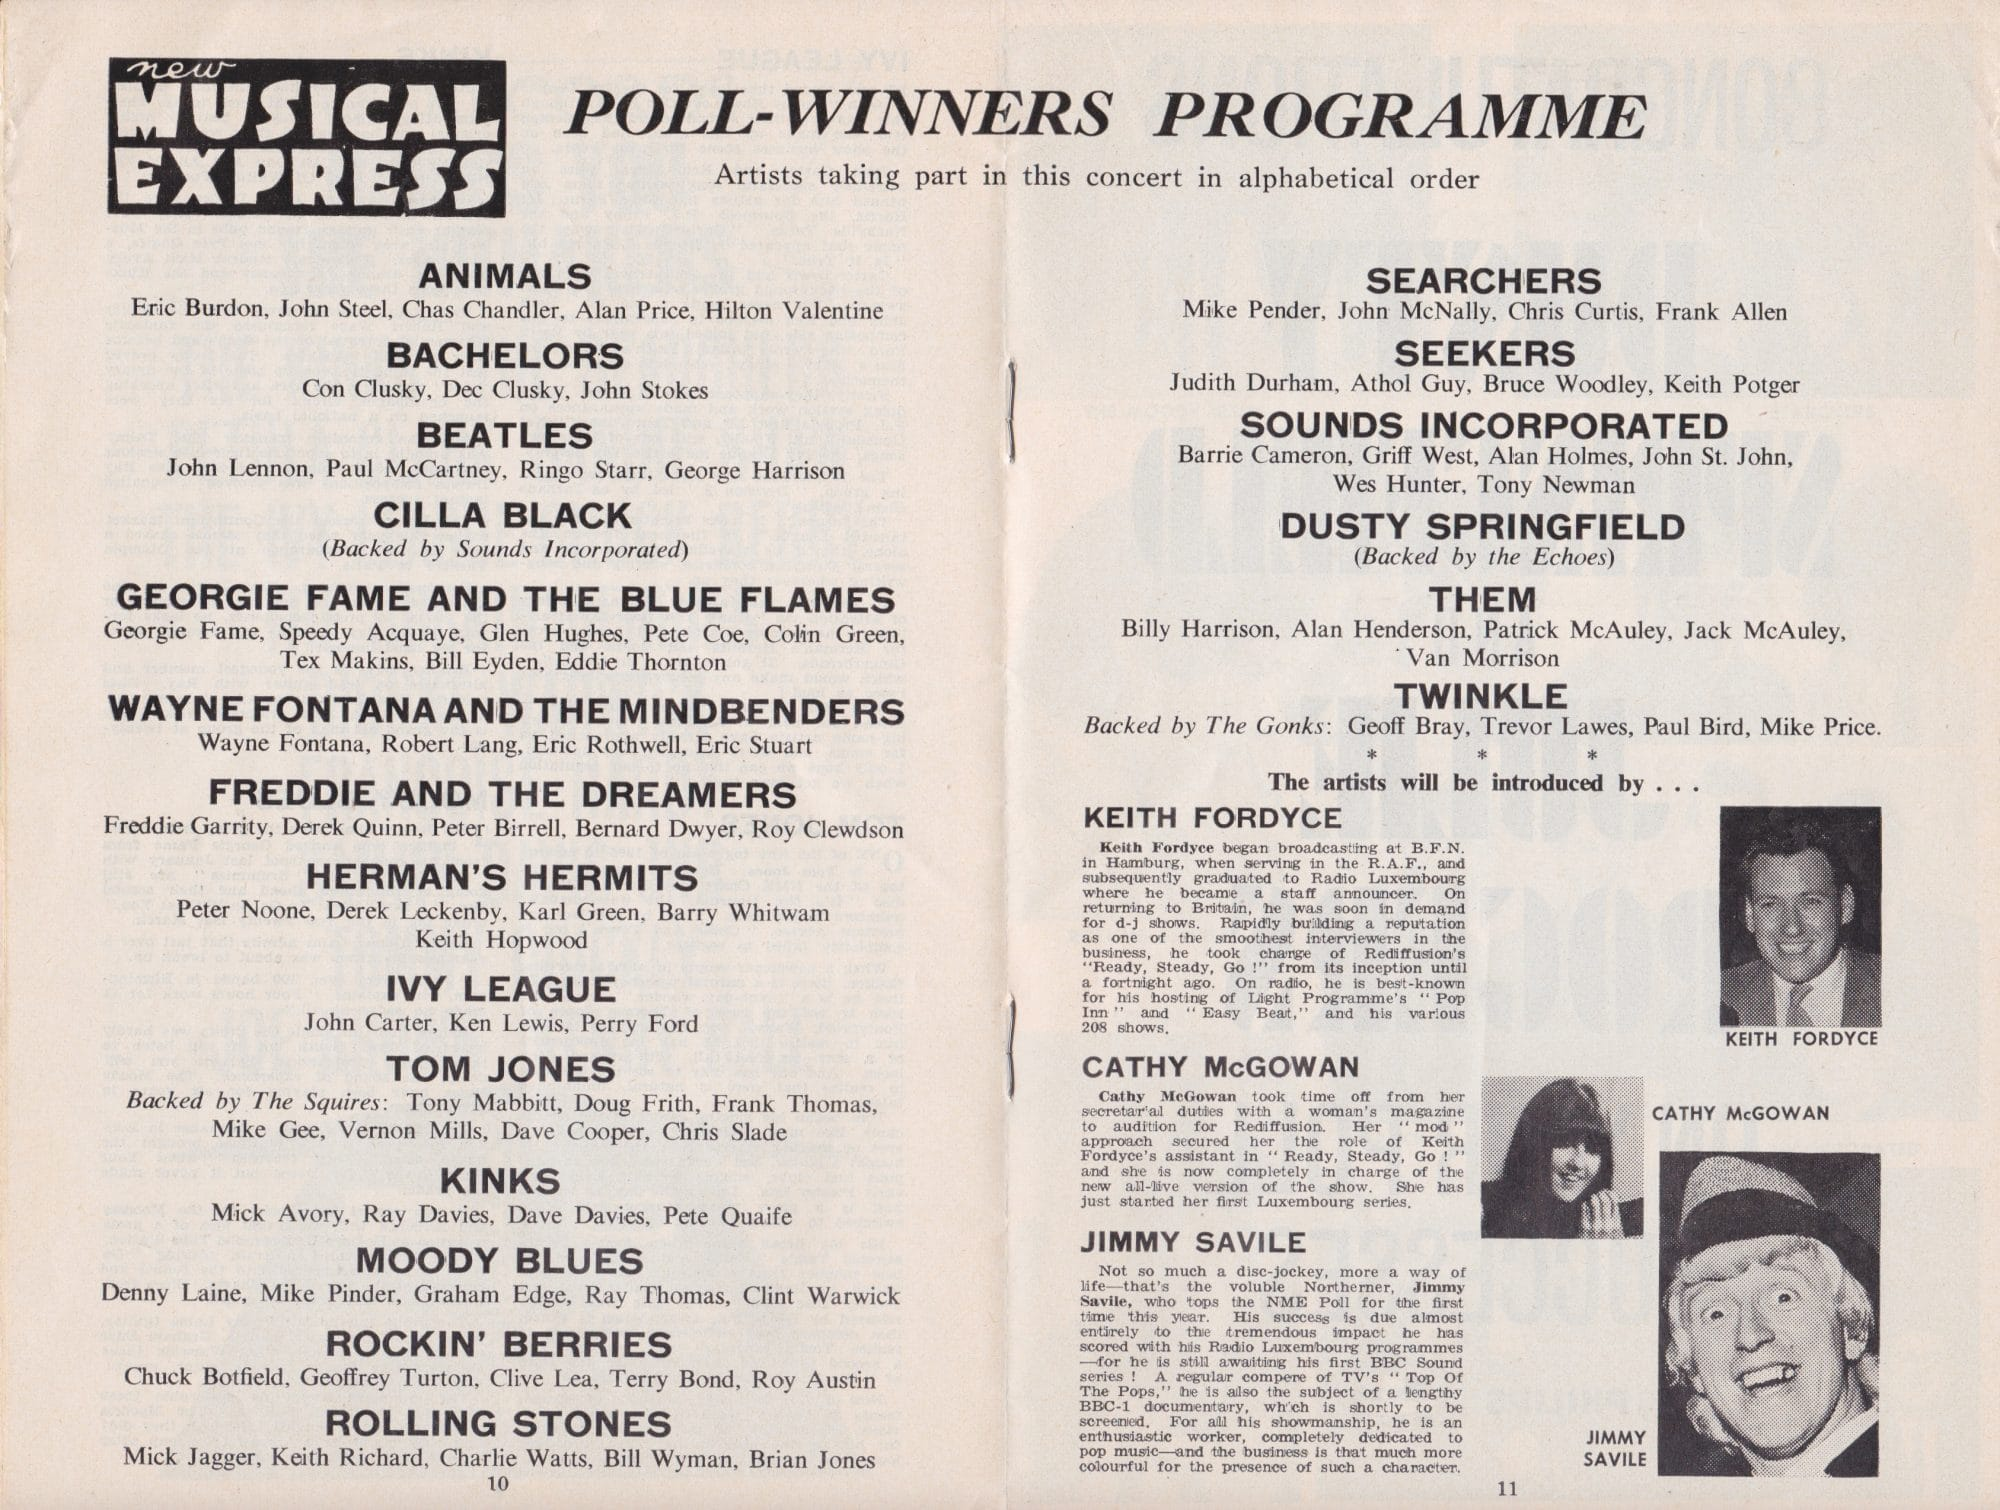 The Beatles Amp Rolling Stones Concert Program For First